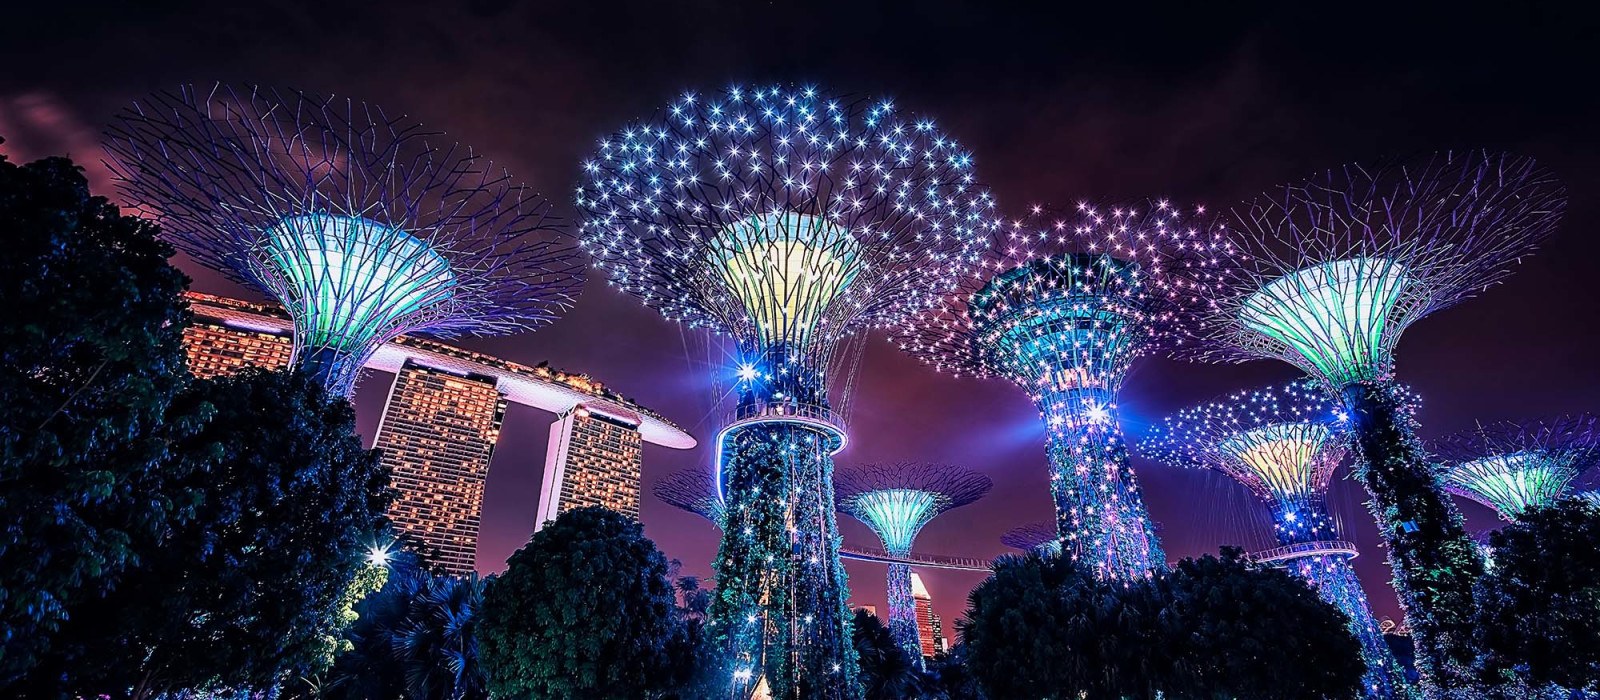 Sound and Light Show at Gardens by the Bay